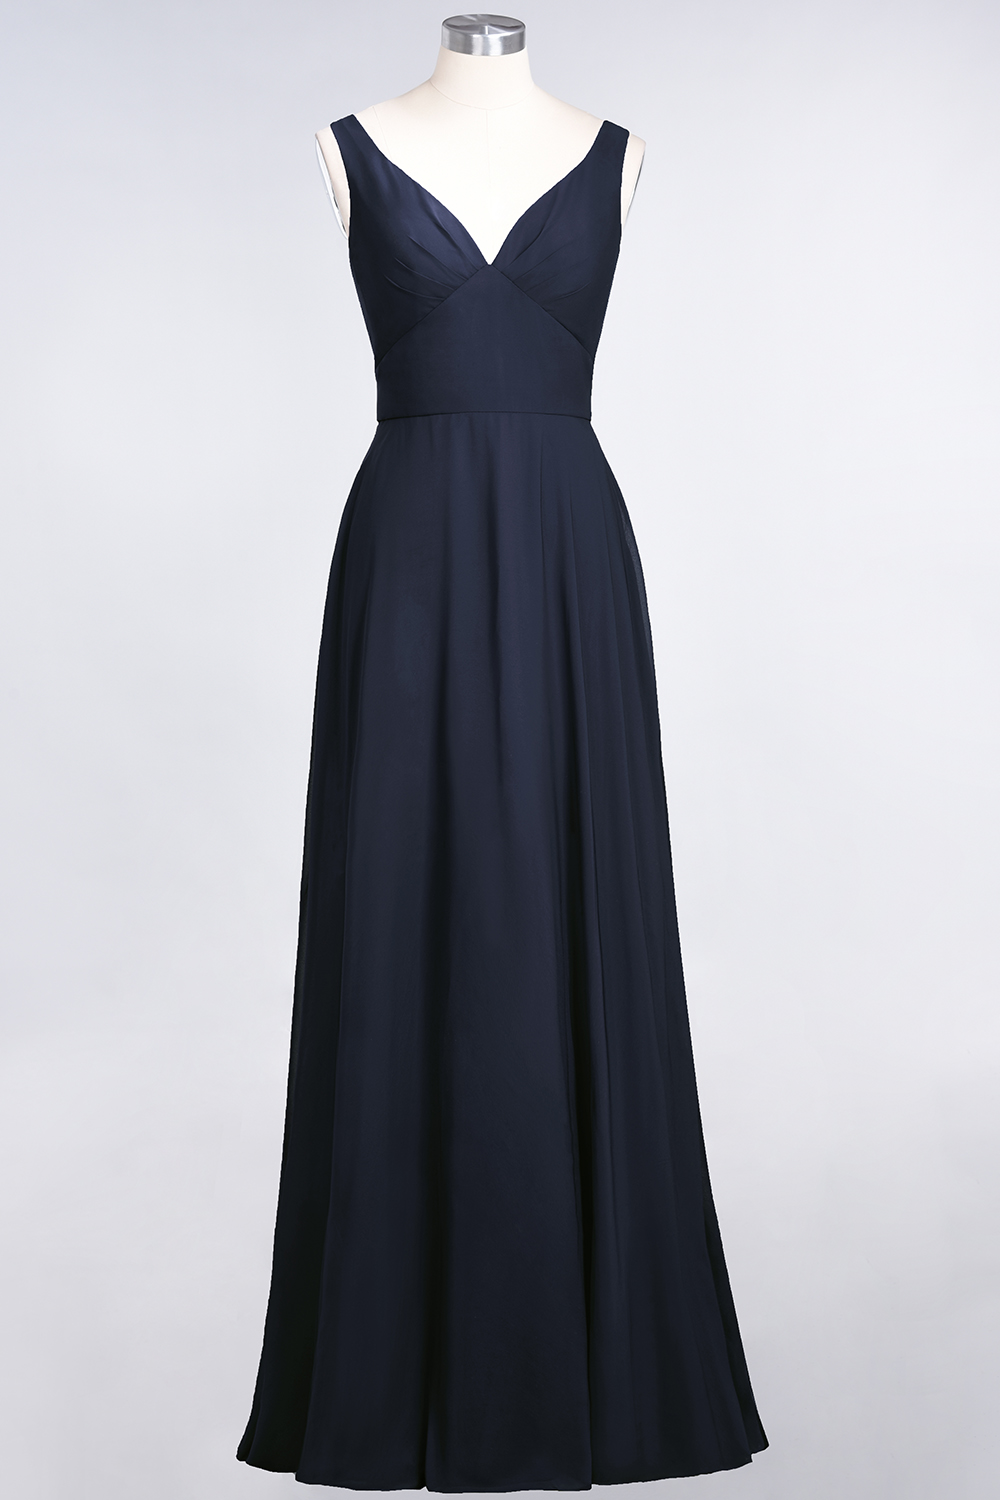 BMbridal Chic Chiffon V-Neck Straps Ruffle Affordable Bridesmaid Dresses with Open Back